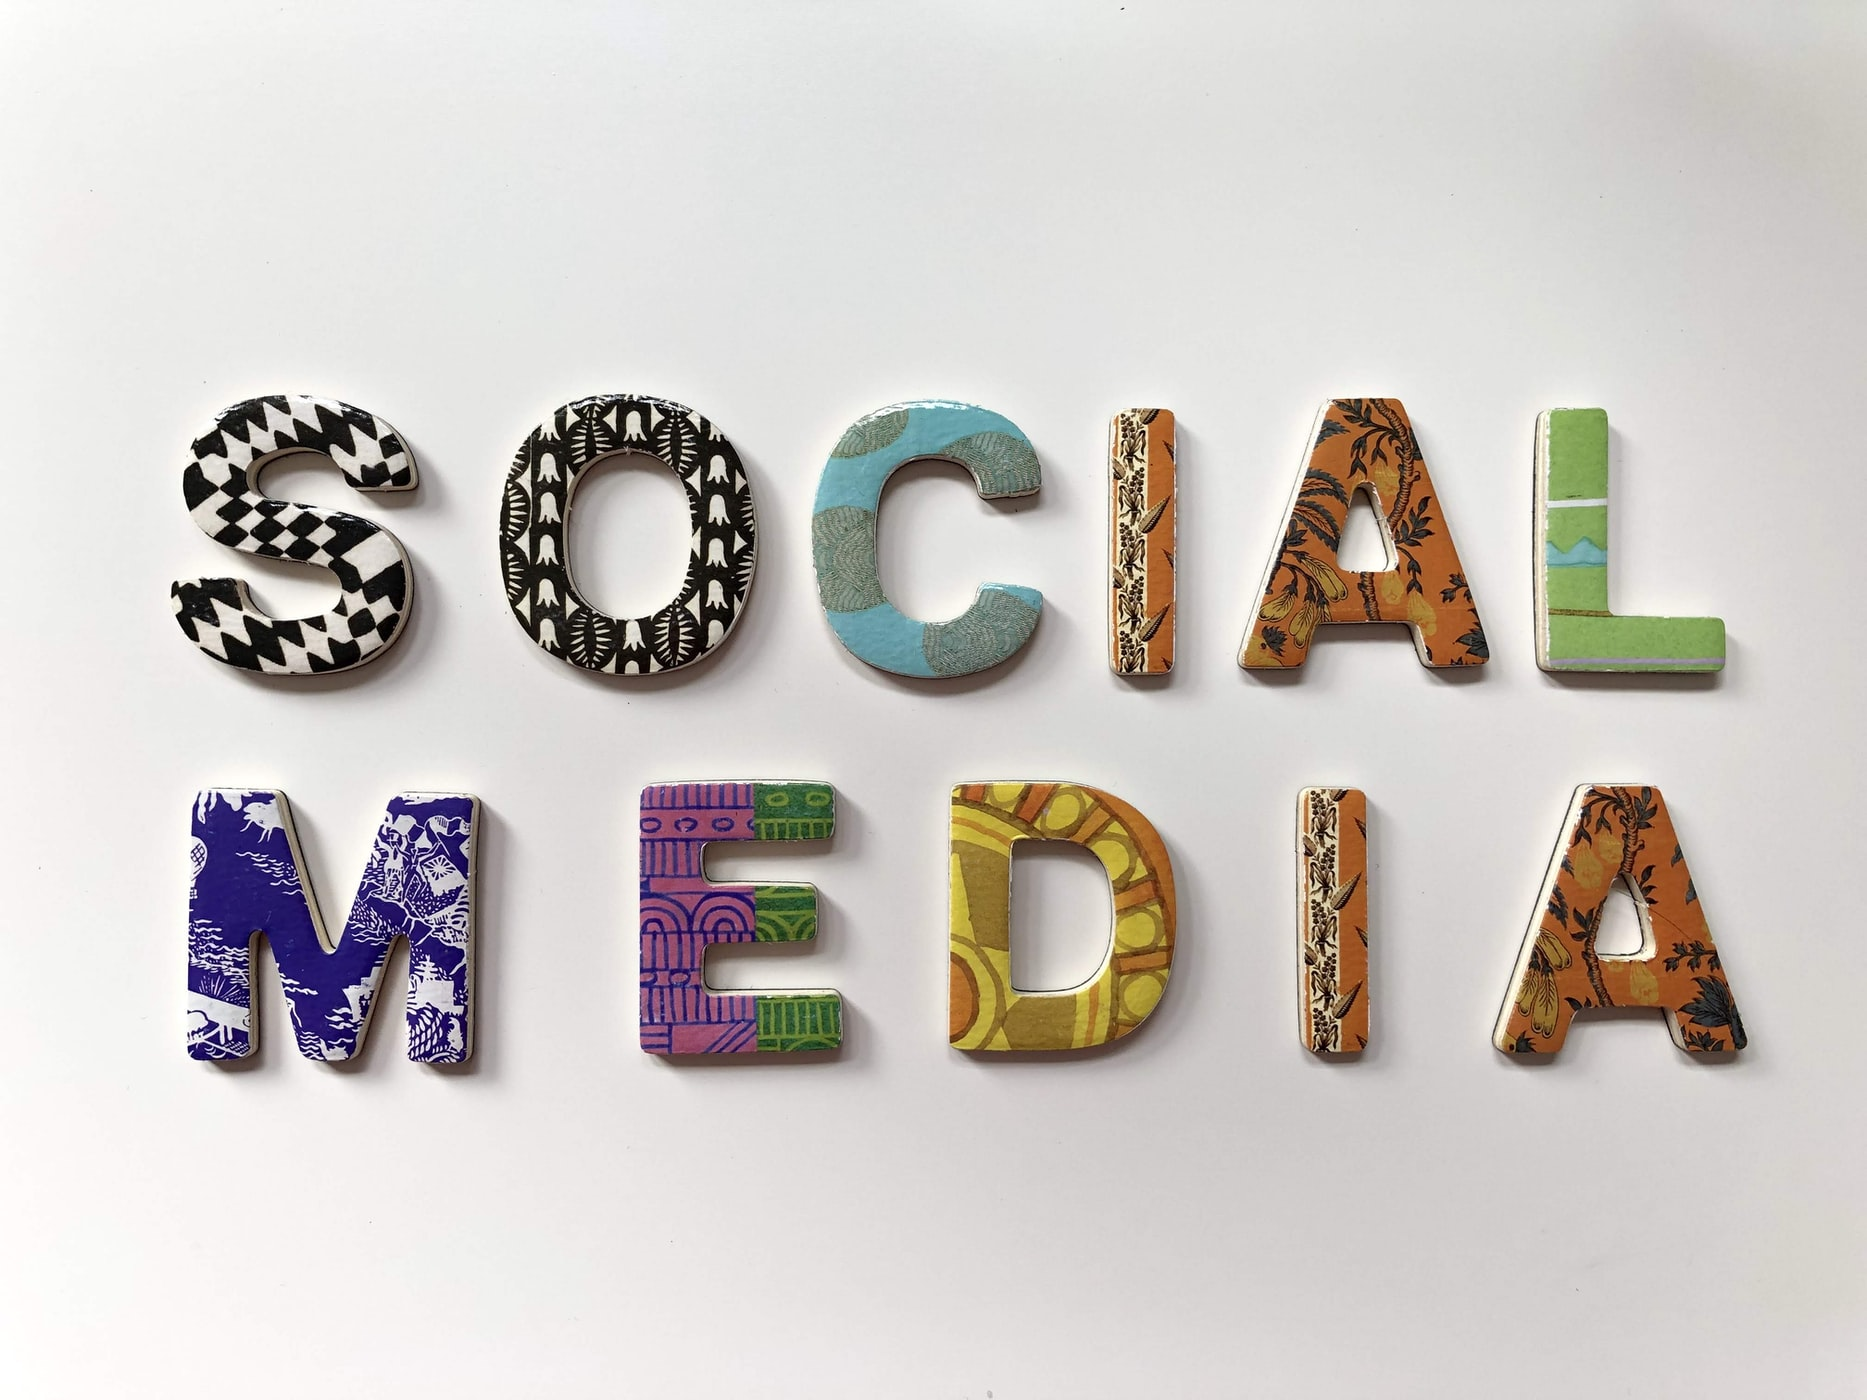 Top 10 Social Media Marketing Tips For Small Business in Singapore